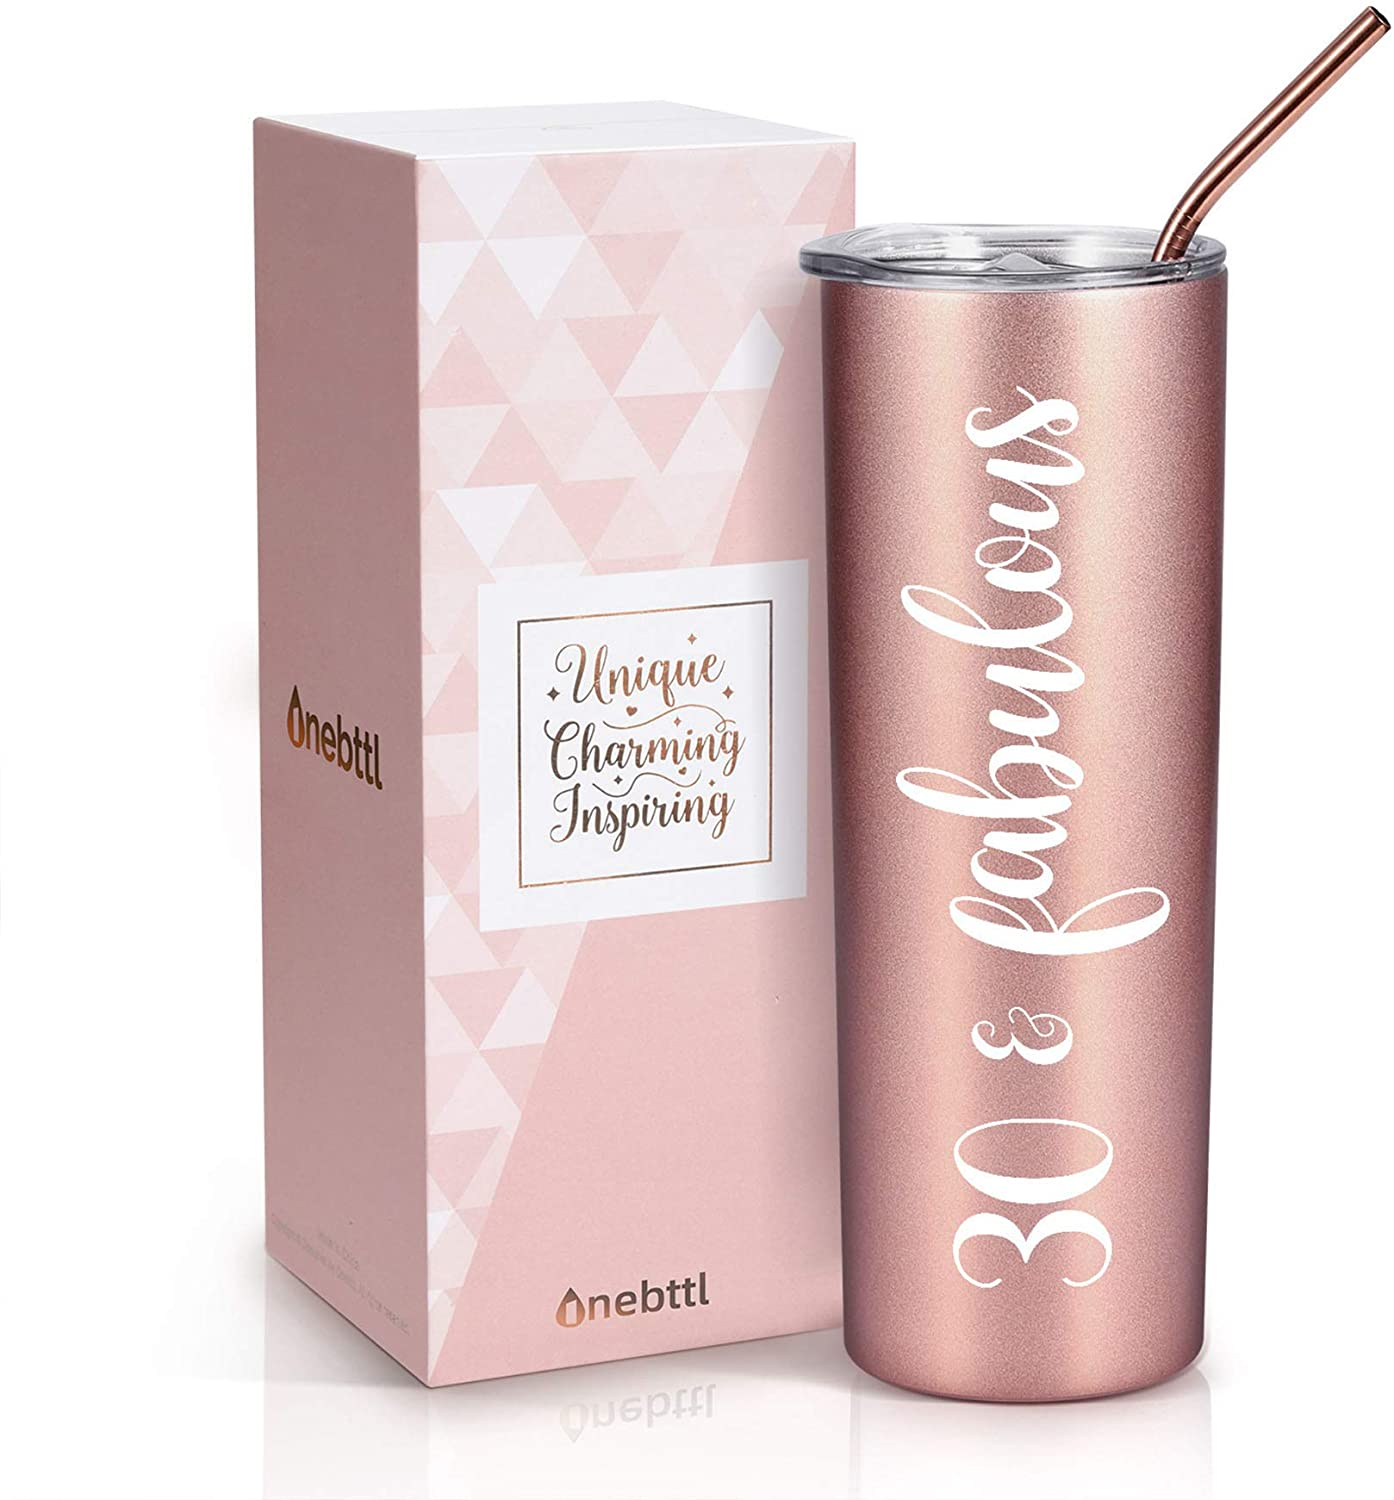 Onebttl 30th Birthday Gifts for Women, Female, Her - 30 and Fabulous - 20oz/590ml Stainless Steel Insulated Tumbler with Straw, Lid, Message Card - (Rose Gold)